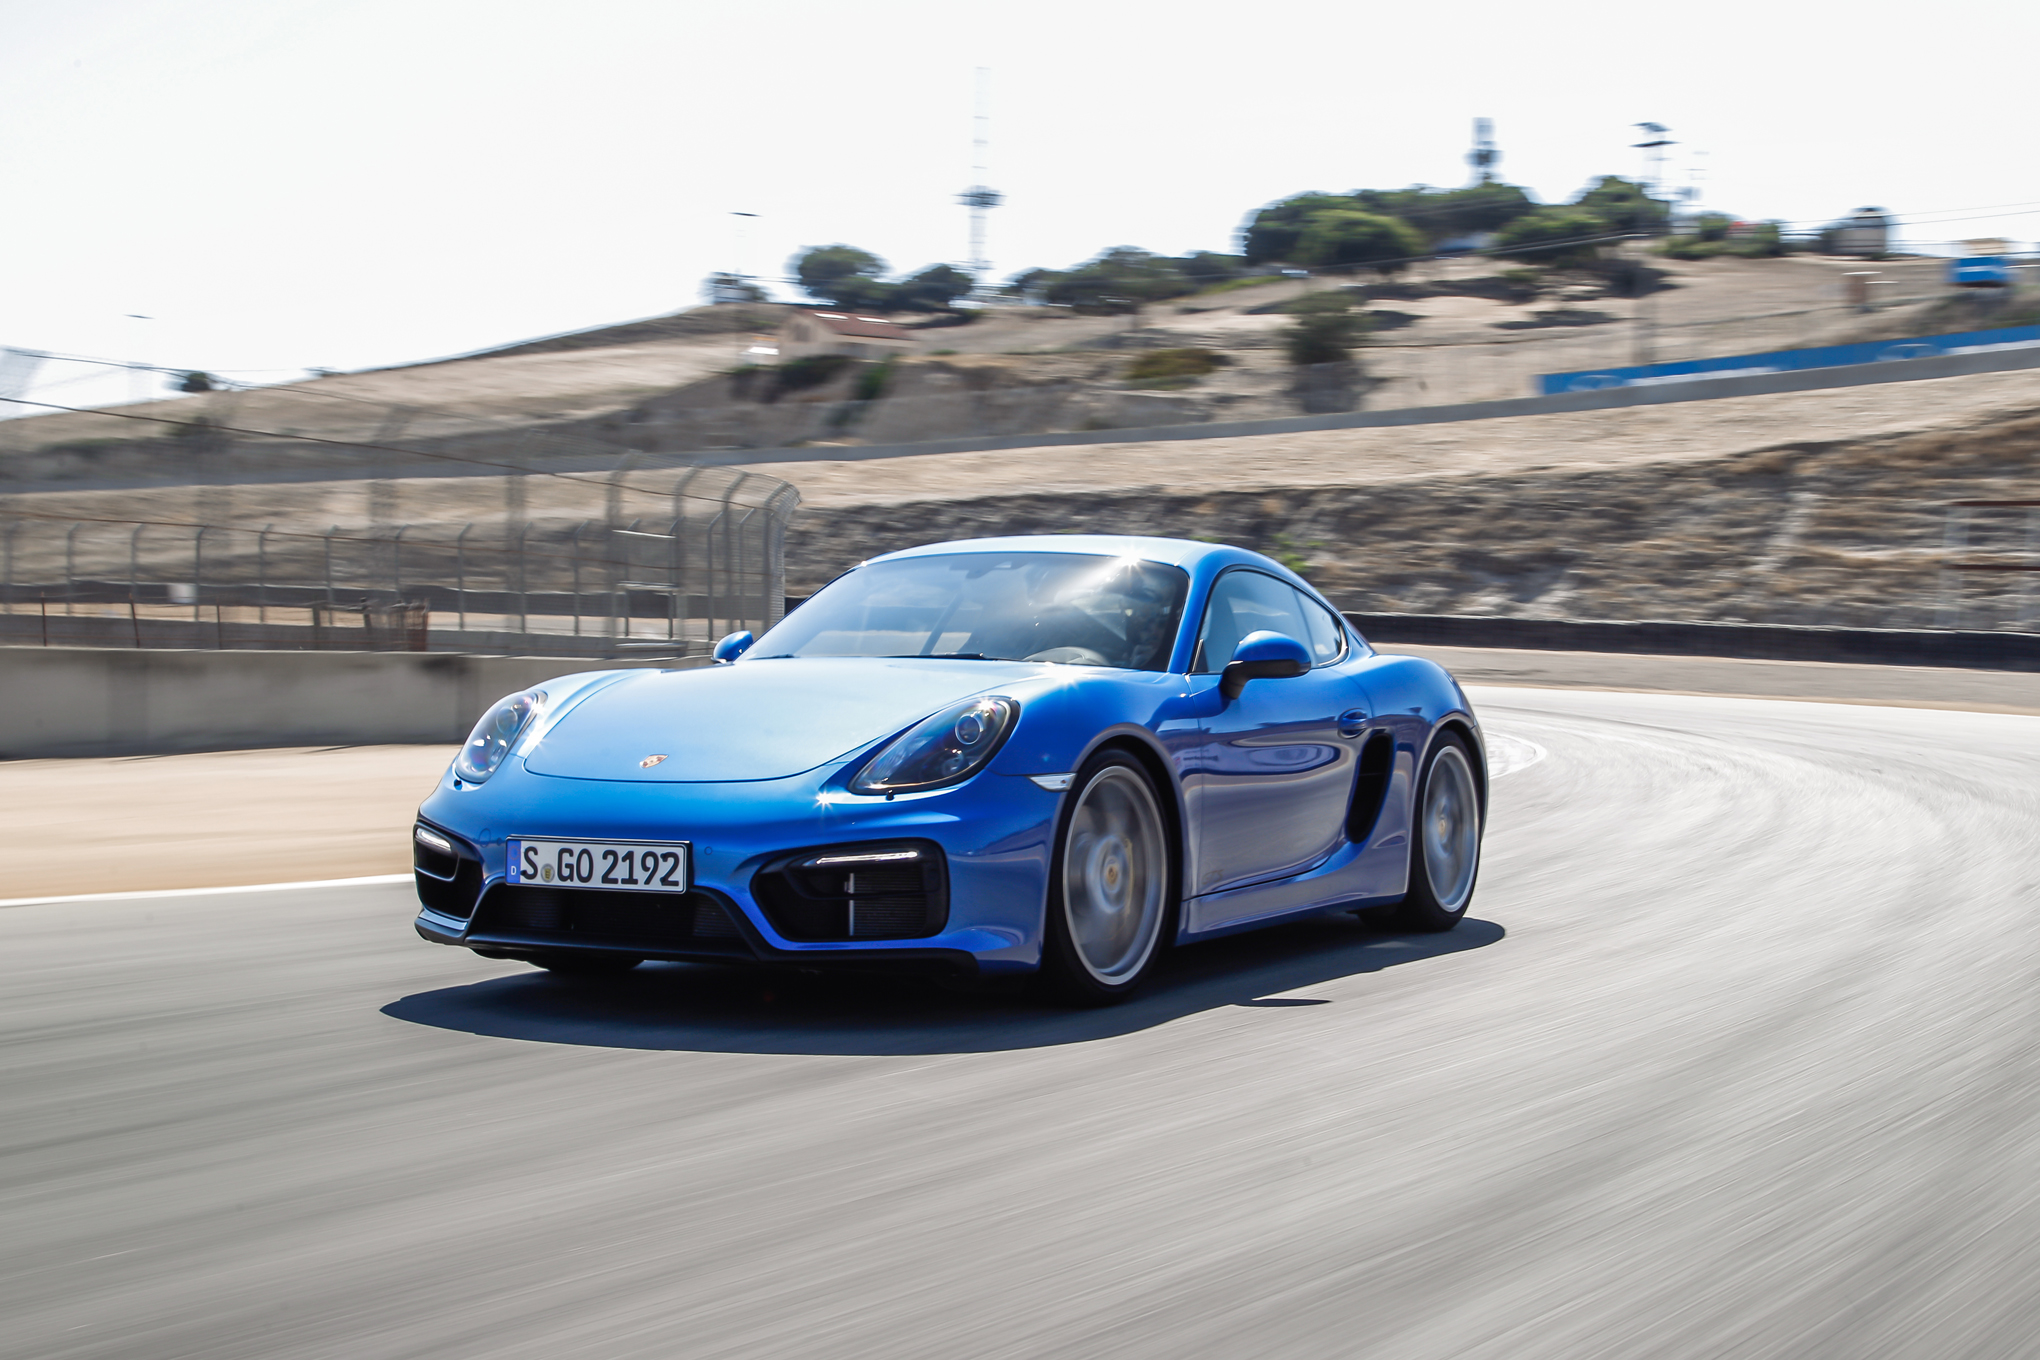 Top 25 Quickest 2015 Cars And Suvs From 0 60 Mph Motortrend